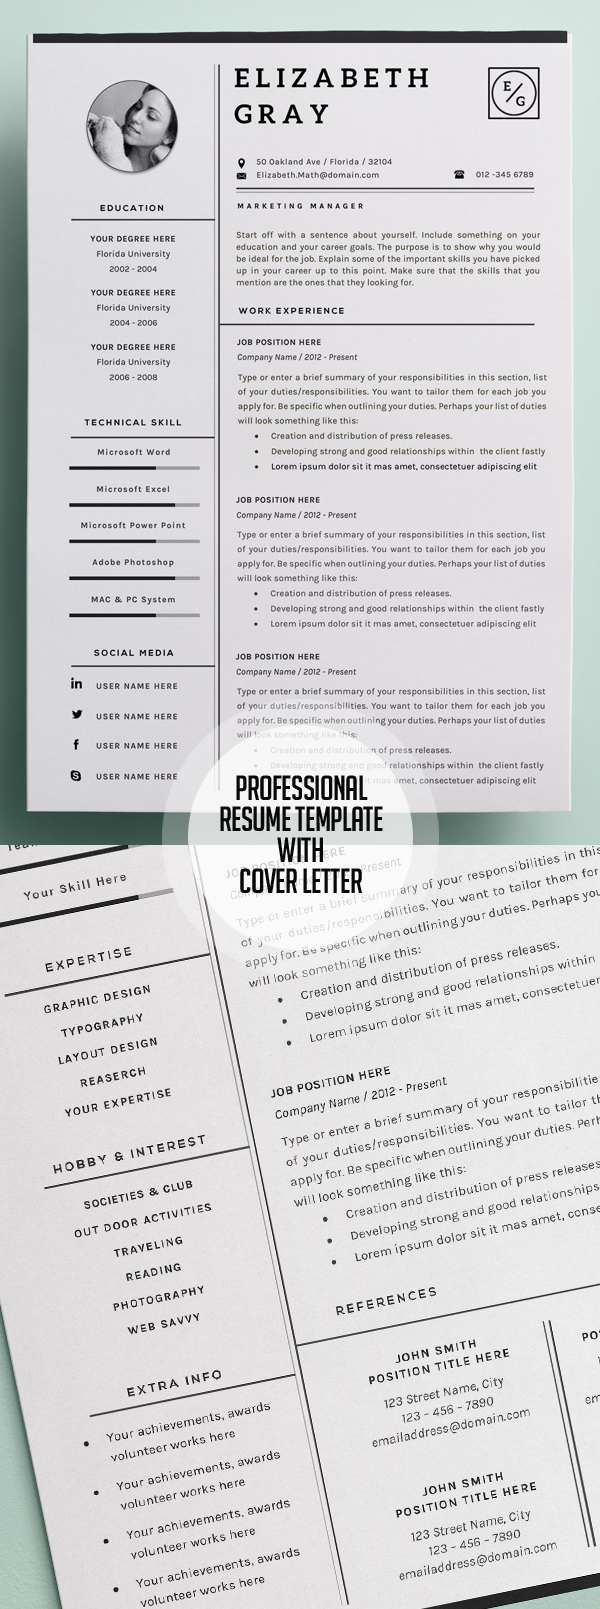 resume Best Resume Images 50 best resume templates for 2018 design graphic junction 30